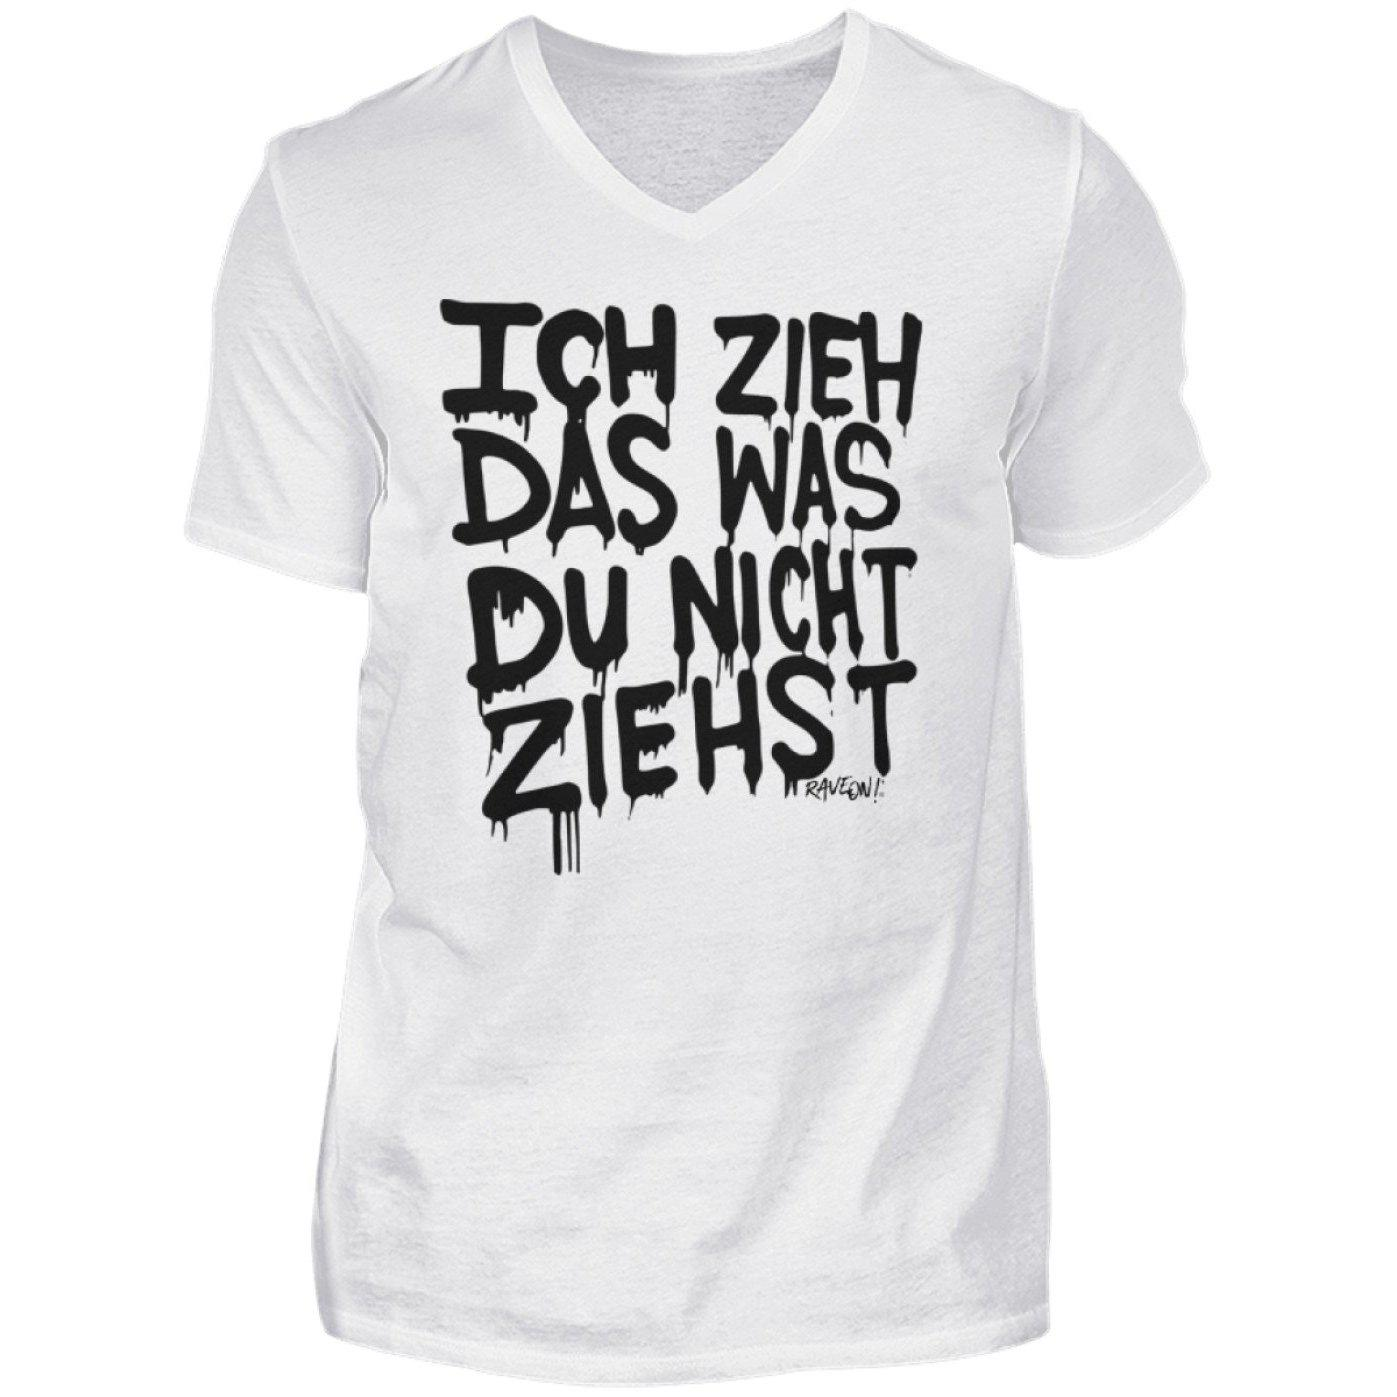 Ich Zieh das... white - Rave On!® - Herren V-Neck Shirt V-Neck Herrenshirt White / S - Rave On!® der Club & Techno Szene Shop für Coole Junge Mode Streetwear Style & Fashion Outfits + Sexy Festival 420 Stuff